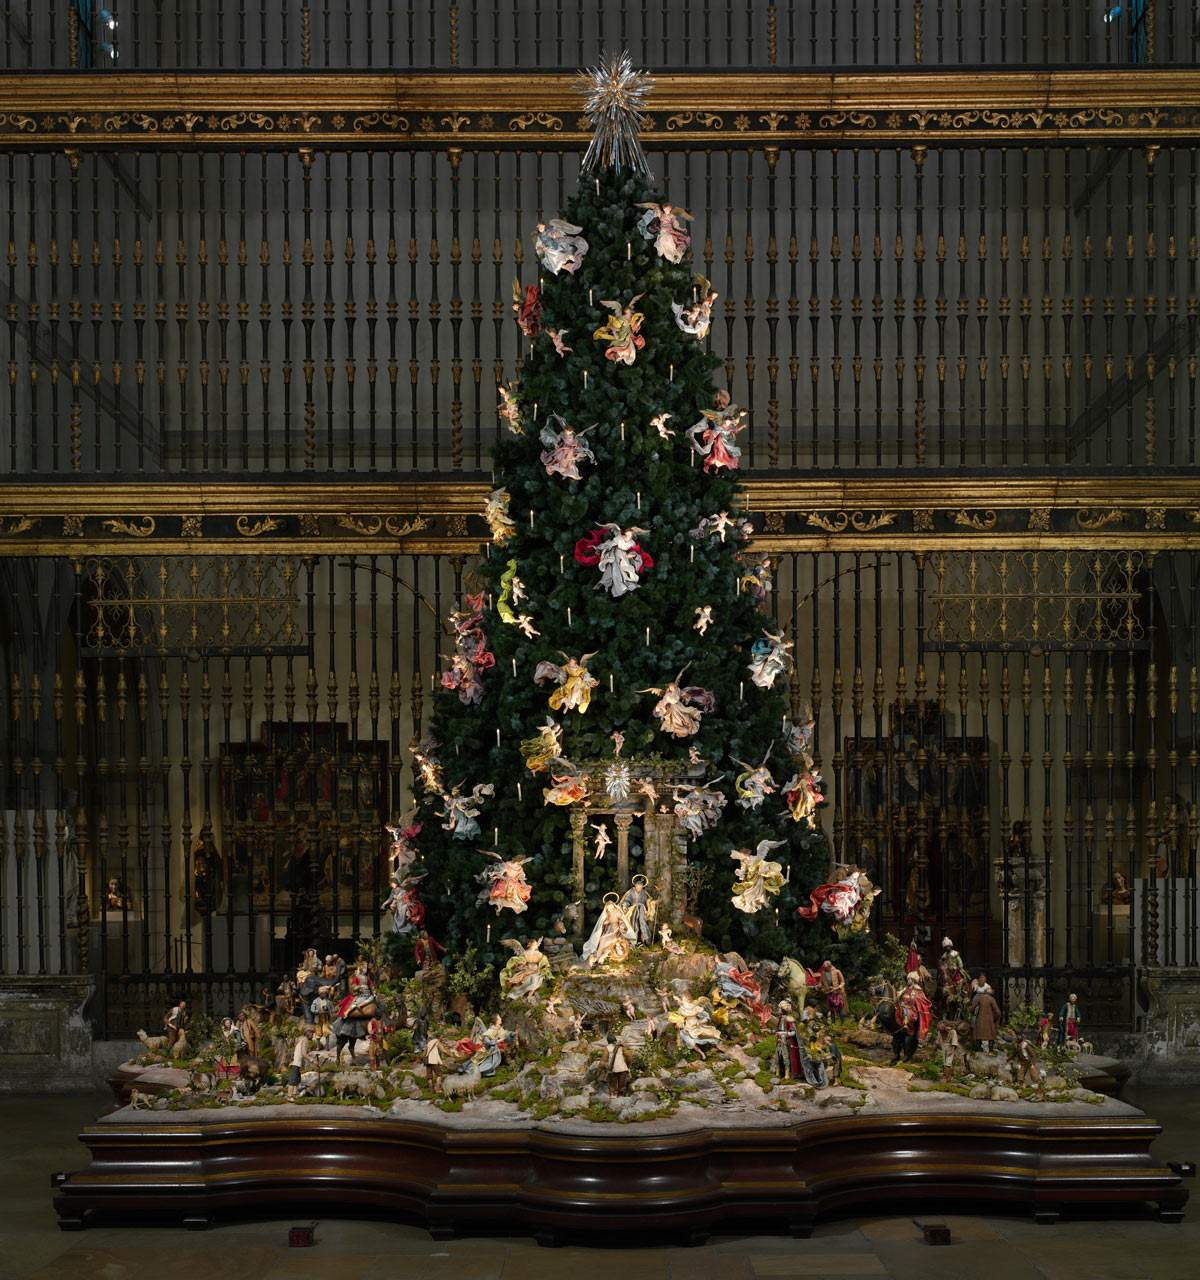 The Tradition Of Christmas Trees: Met's Christmas Tree & Creche Continue Holiday Tradition